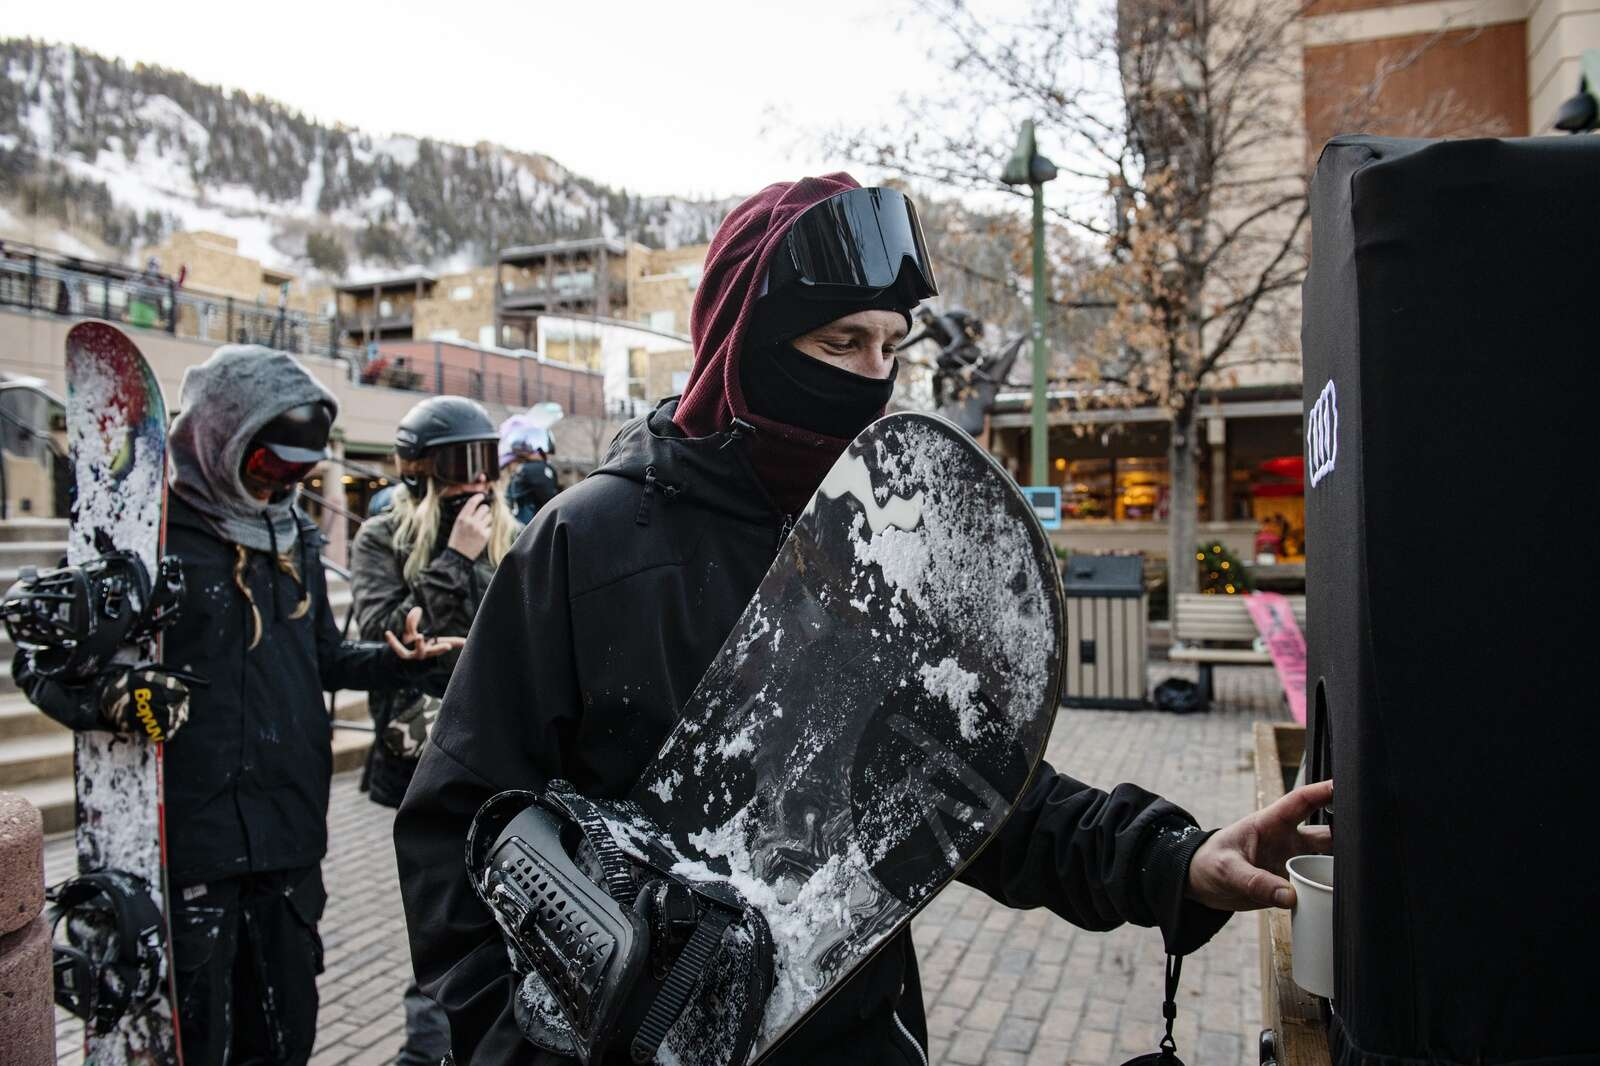 Aspen local Aaron Spada fills a cup with hot chocolate after getting off Aspen Mountain on Thursday, Dec. 3, 2020. Spada works as a bartender at Jimmys. (Kelsey Brunner/The Aspen Times)